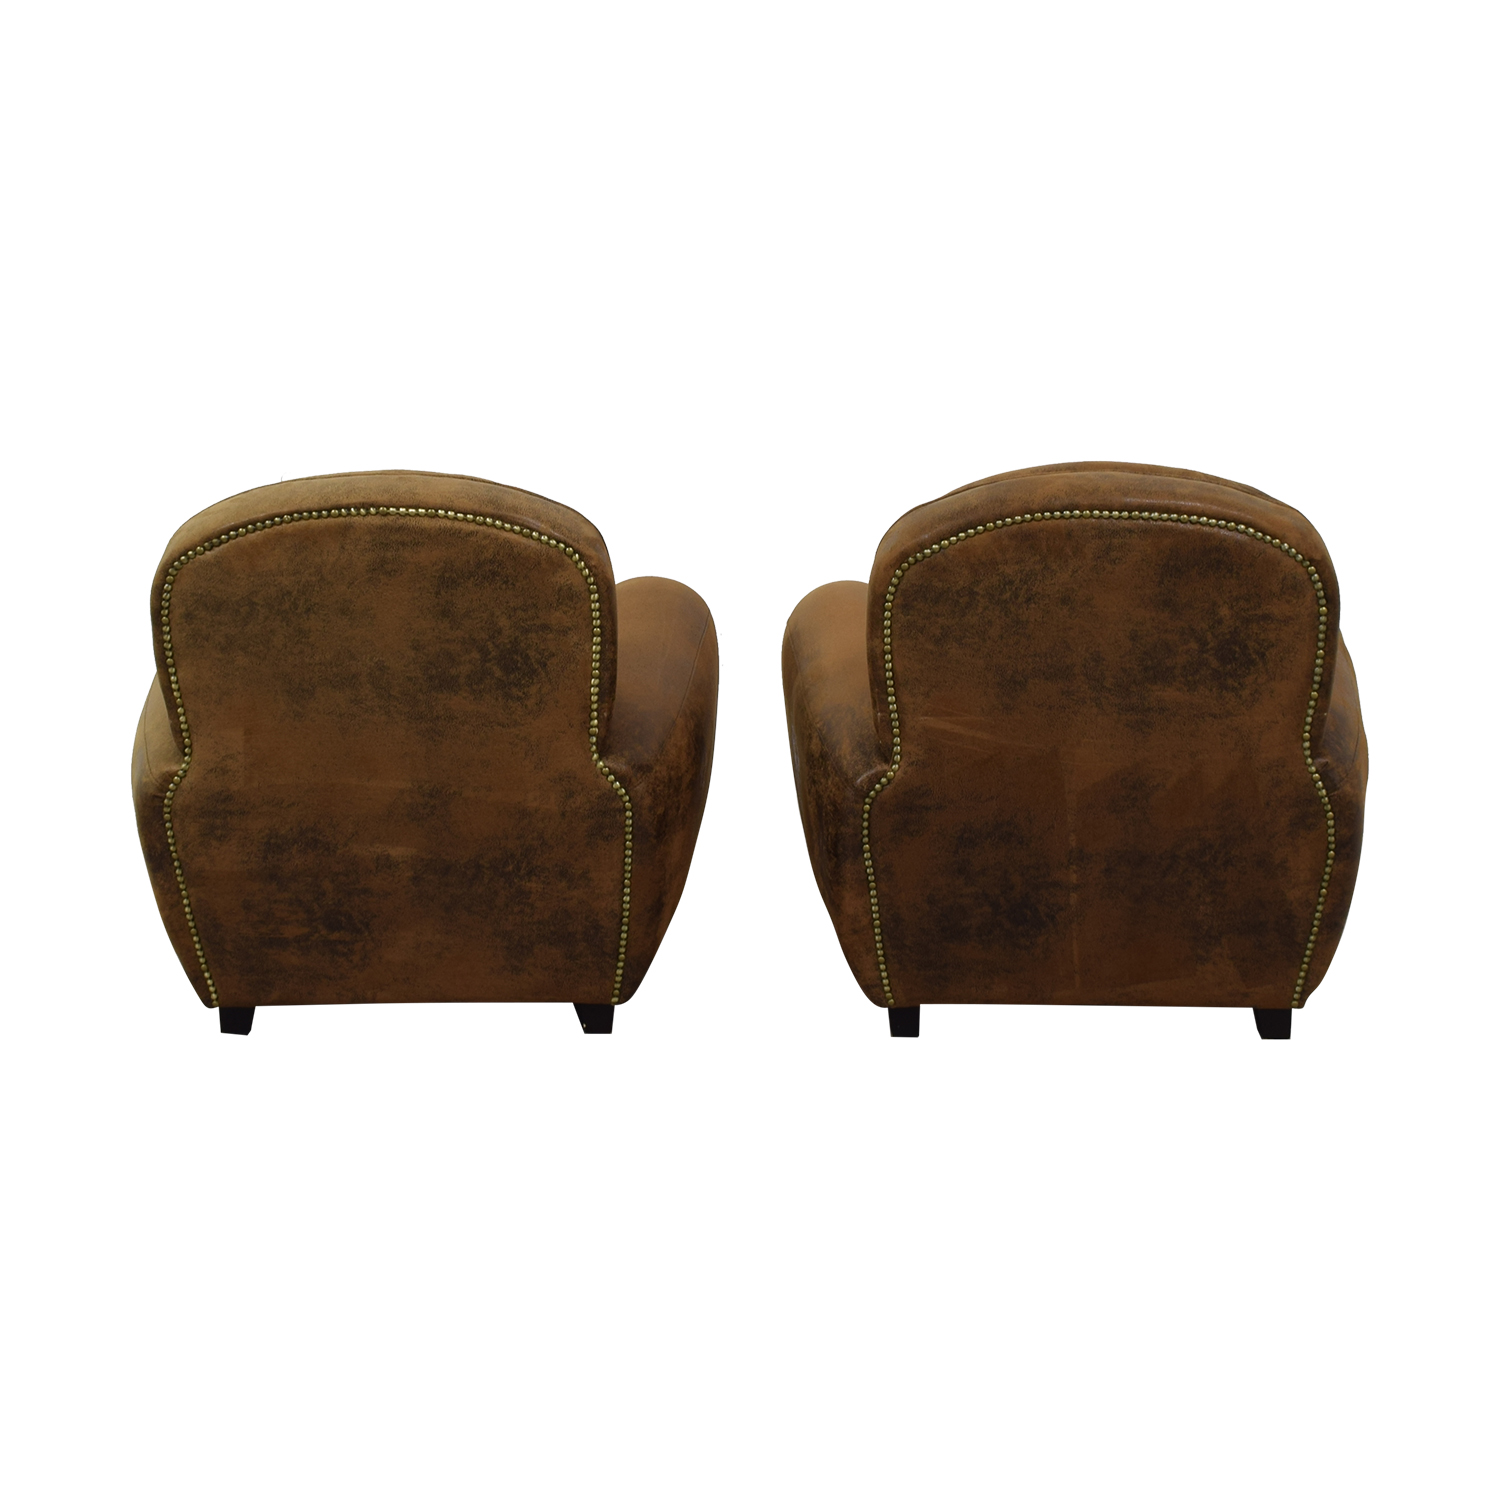 Maison du Monde Maison du Monde Brown Club Chairs Accent Chairs